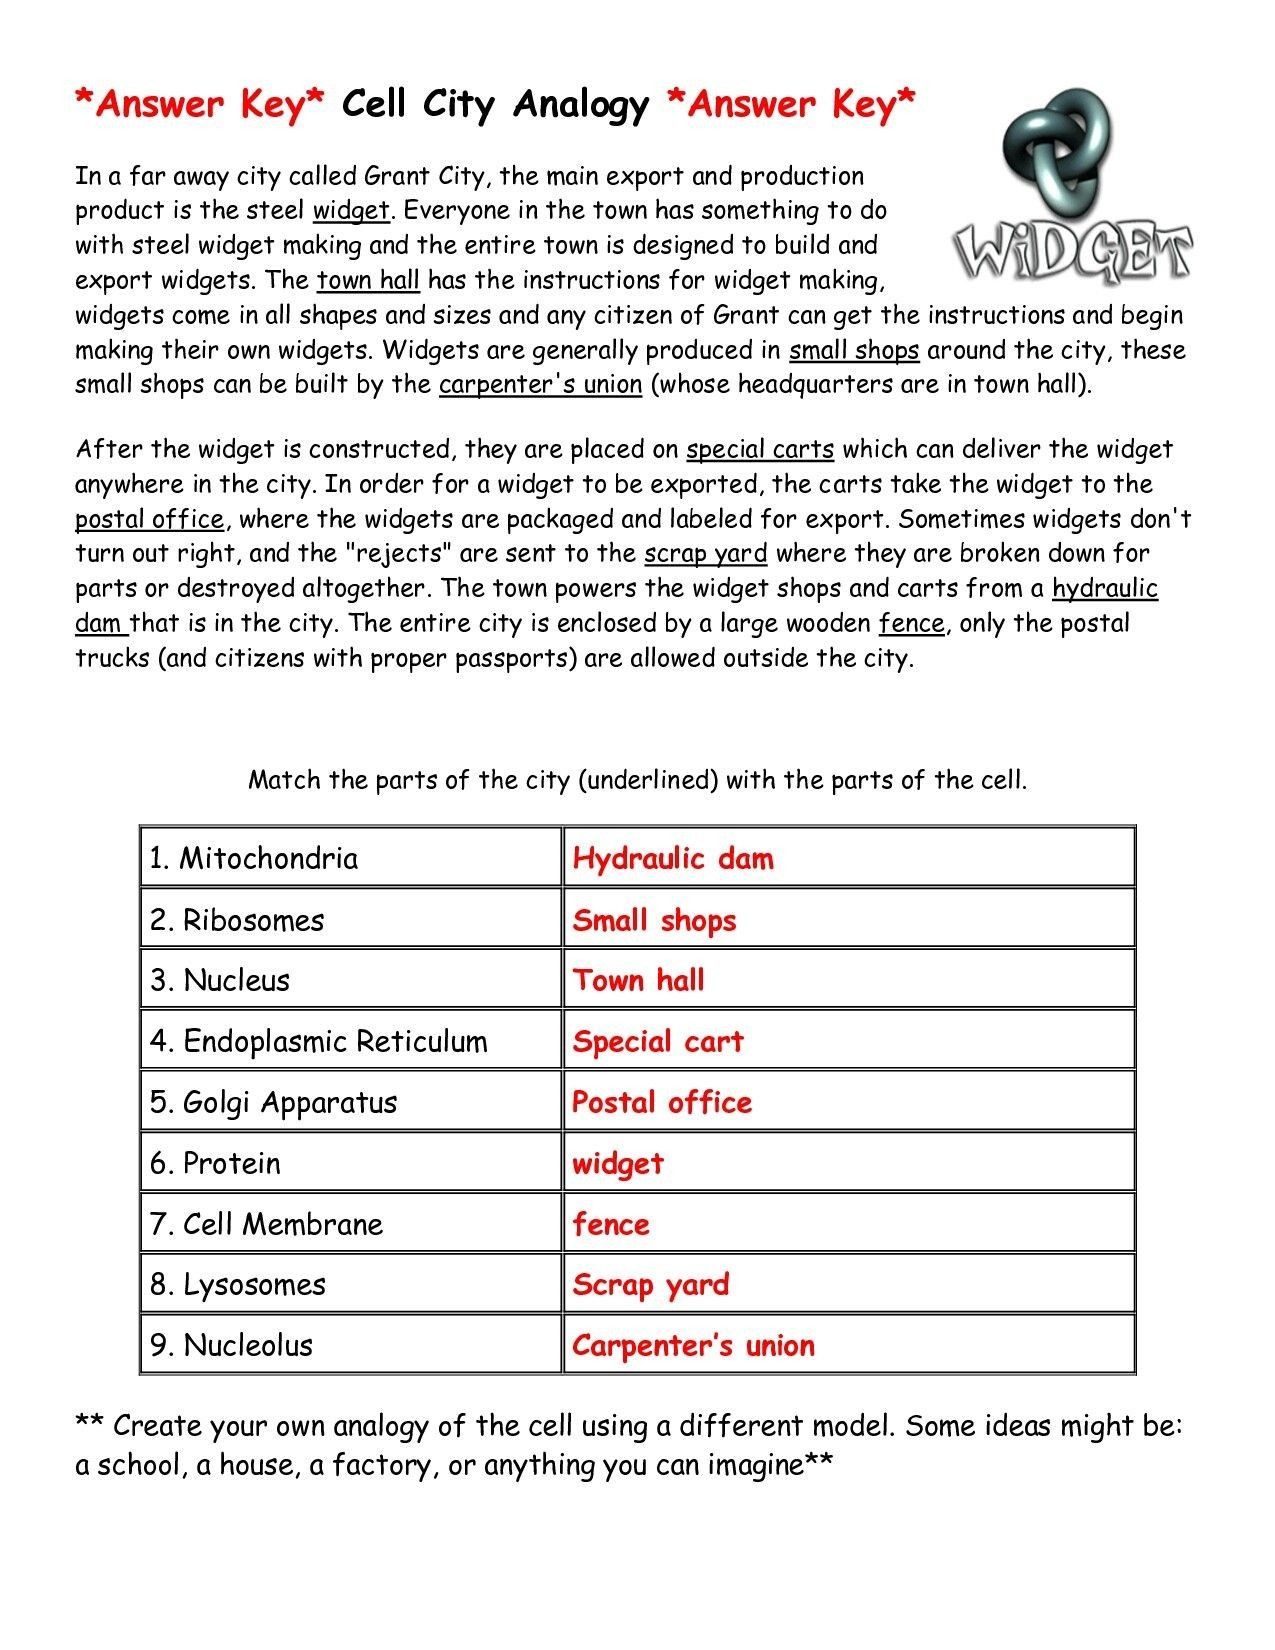 Cellular Transport Worksheet Answer Key Cell Membrane Worksheet